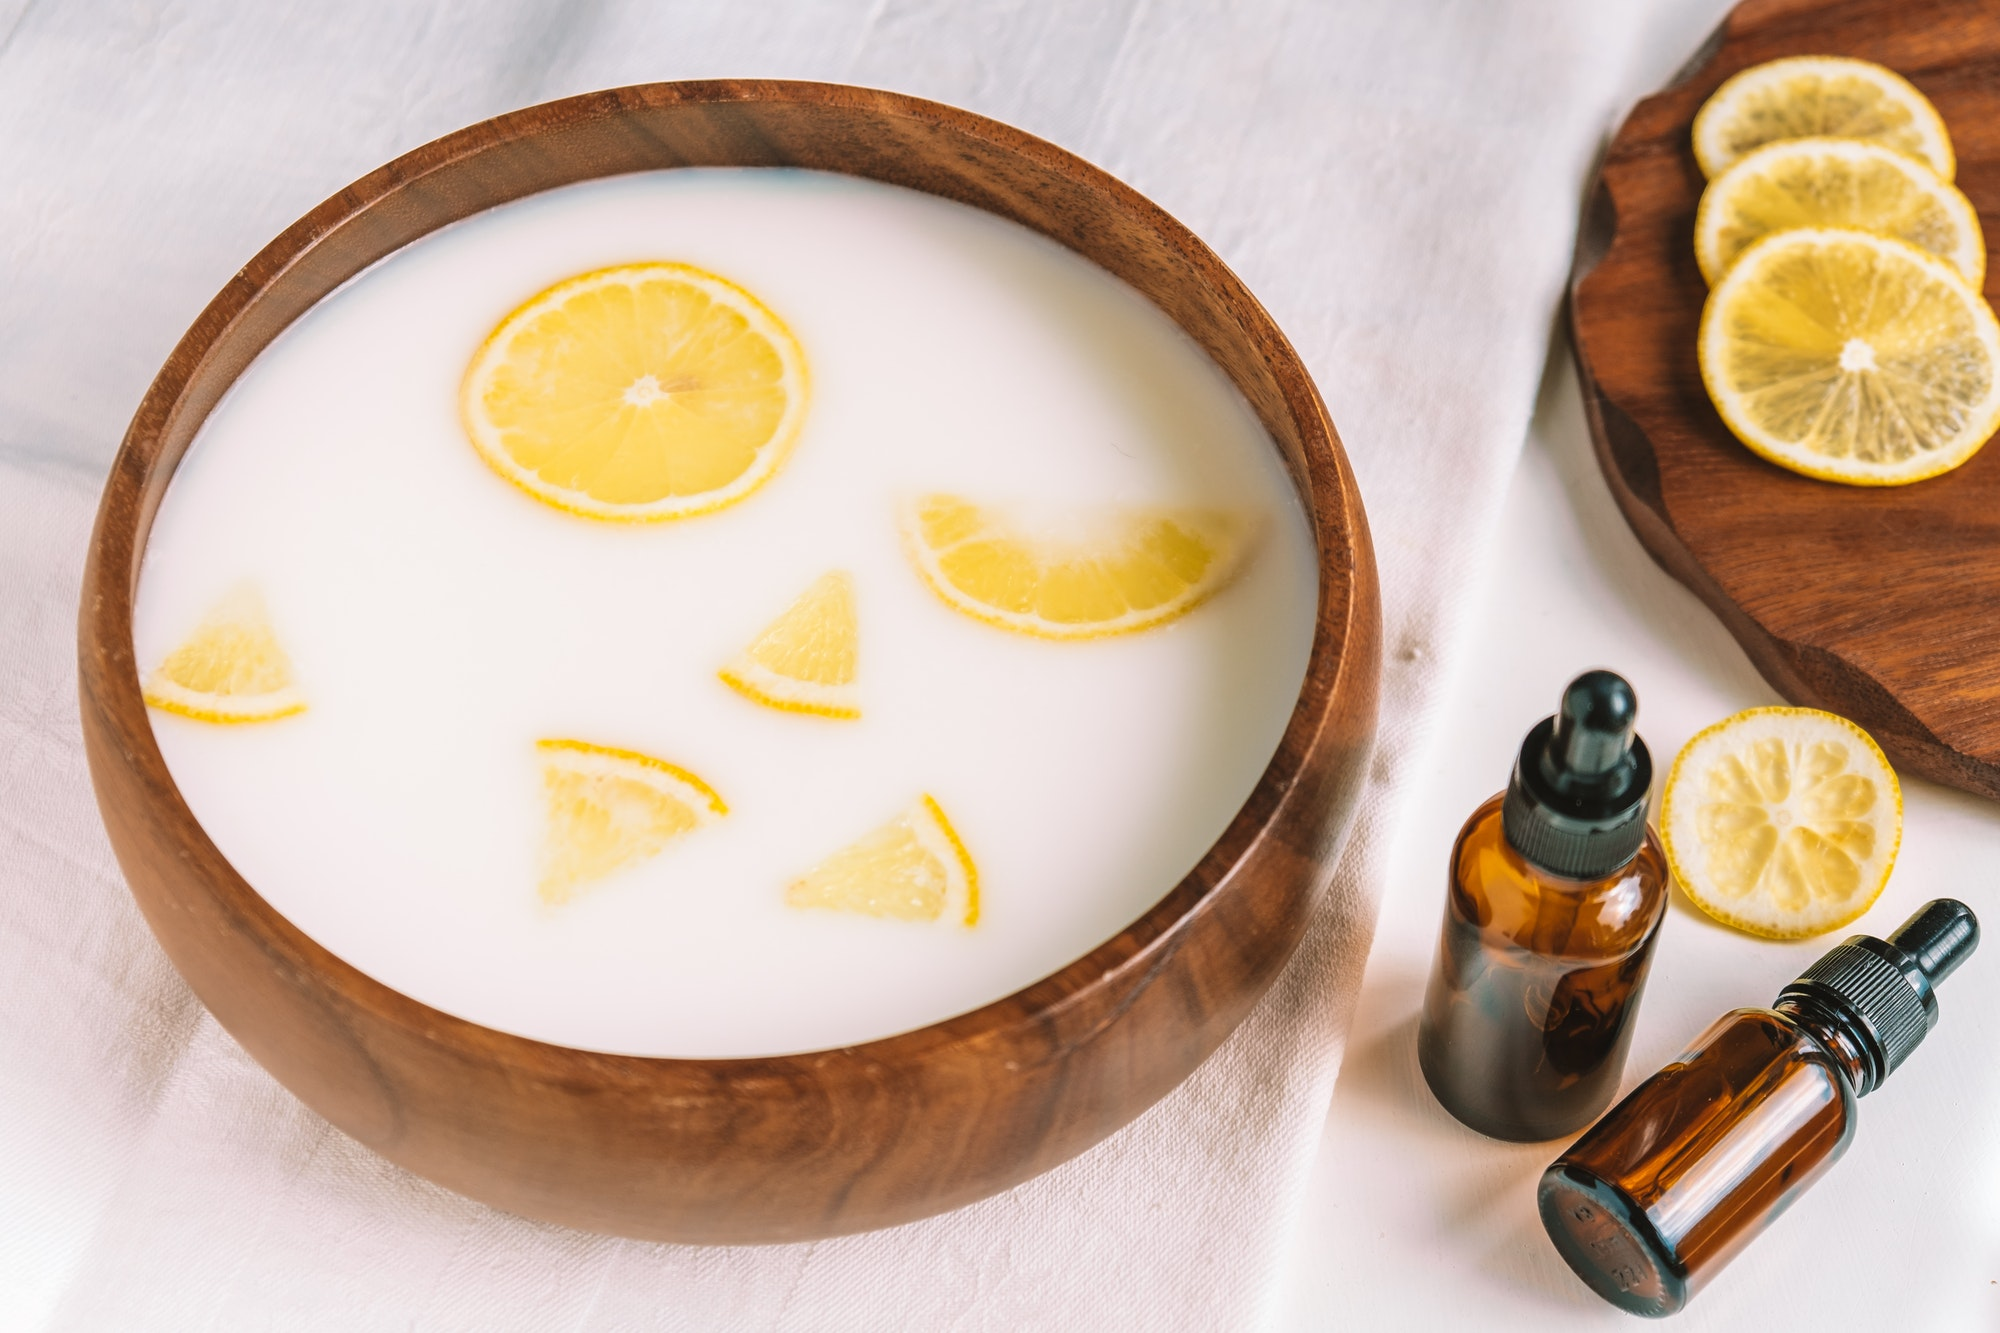 A bowl with milk and lemon slices for hand skin care. Softening and whitening.